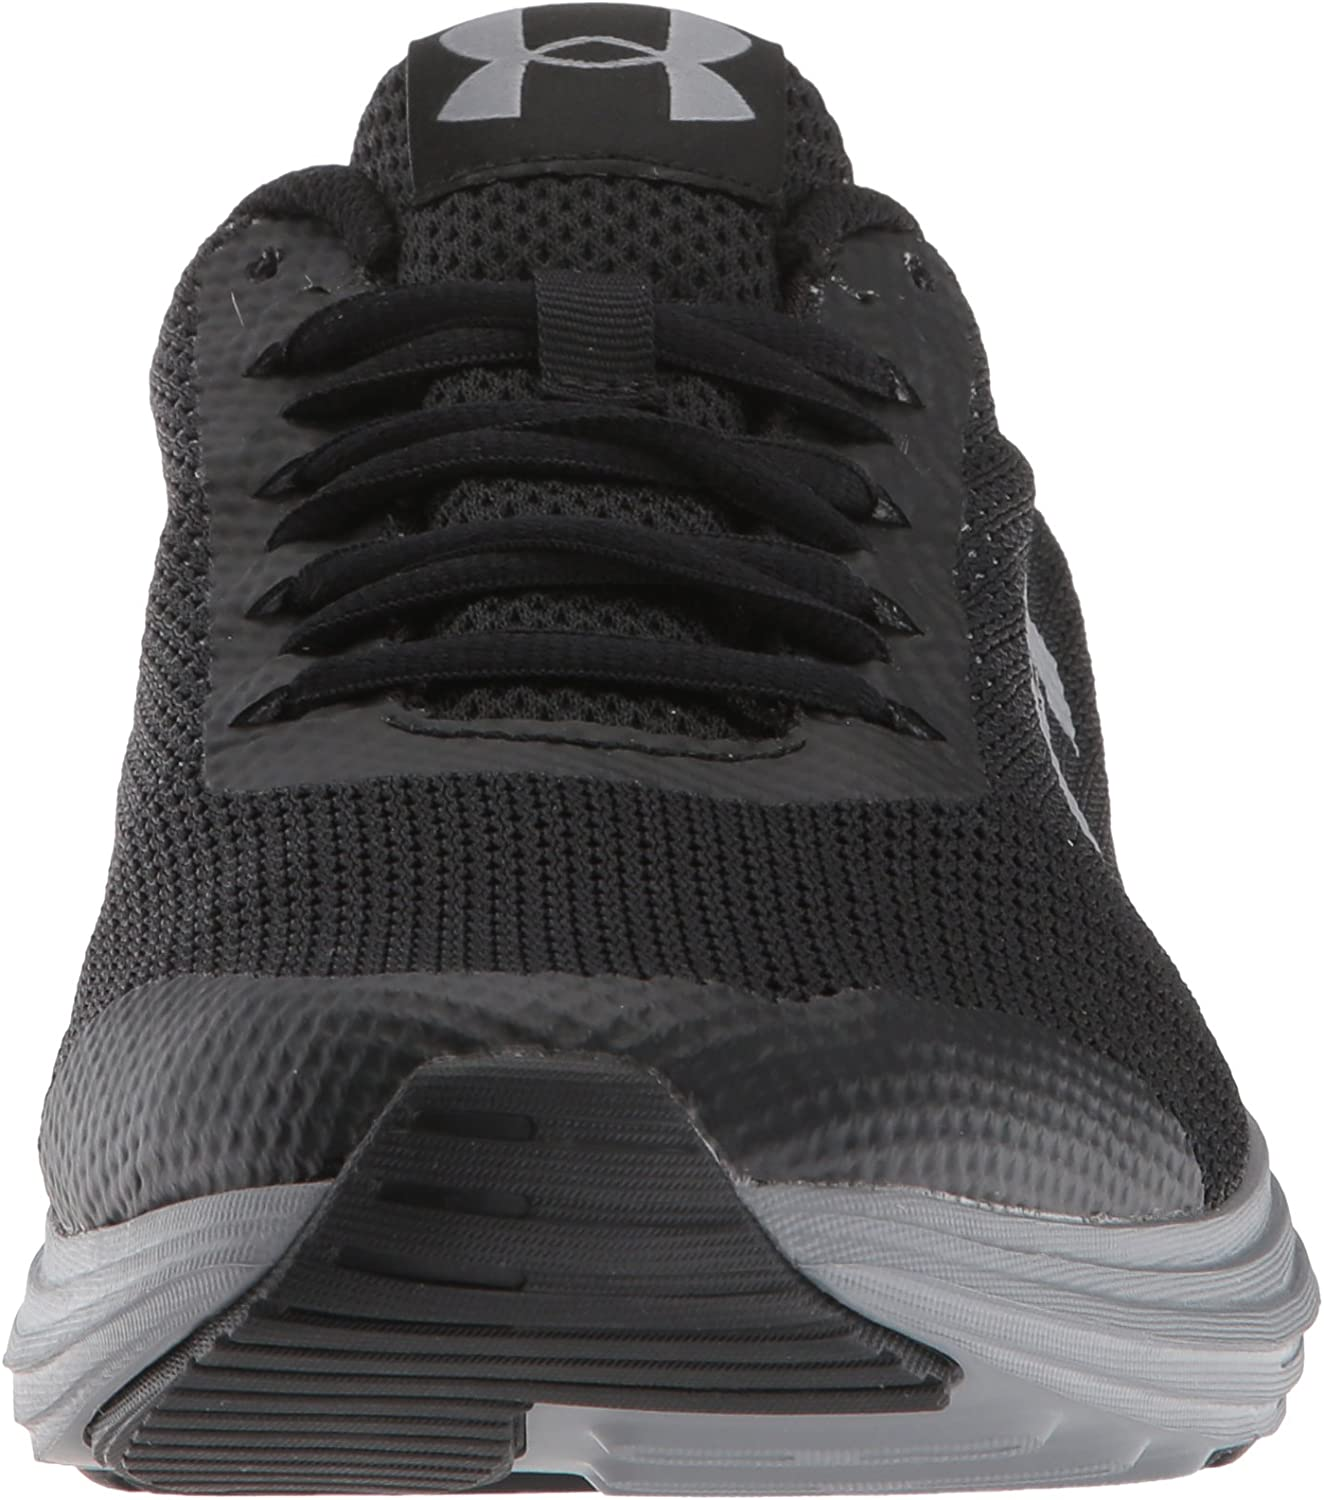 Under Armour Men s Sway Running Shoe, Anthracite 100 Zinc Gray, 8.5